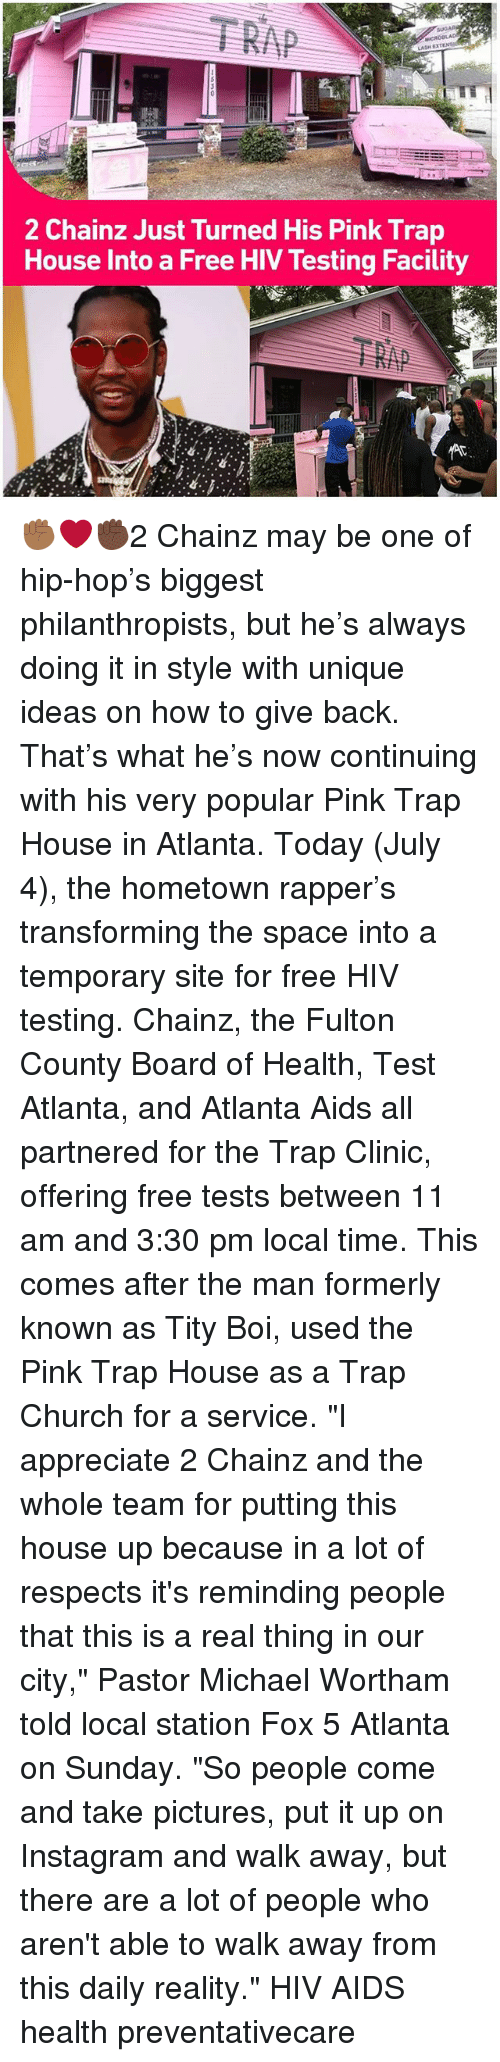 """Church, Instagram, and Memes: 2 Chainz Just Turned His Pink Trap  House Into a Free HIV Testing Facility ✊🏾❤✊🏿2 Chainz may be one of hip-hop's biggest philanthropists, but he's always doing it in style with unique ideas on how to give back. That's what he's now continuing with his very popular Pink Trap House in Atlanta. Today (July 4), the hometown rapper's transforming the space into a temporary site for free HIV testing. Chainz, the Fulton County Board of Health, Test Atlanta, and Atlanta Aids all partnered for the Trap Clinic, offering free tests between 11 am and 3:30 pm local time. This comes after the man formerly known as Tity Boi, used the Pink Trap House as a Trap Church for a service. """"I appreciate 2 Chainz and the whole team for putting this house up because in a lot of respects it's reminding people that this is a real thing in our city,"""" Pastor Michael Wortham told local station Fox 5 Atlanta on Sunday. """"So people come and take pictures, put it up on Instagram and walk away, but there are a lot of people who aren't able to walk away from this daily reality."""" HIV AIDS health preventativecare"""